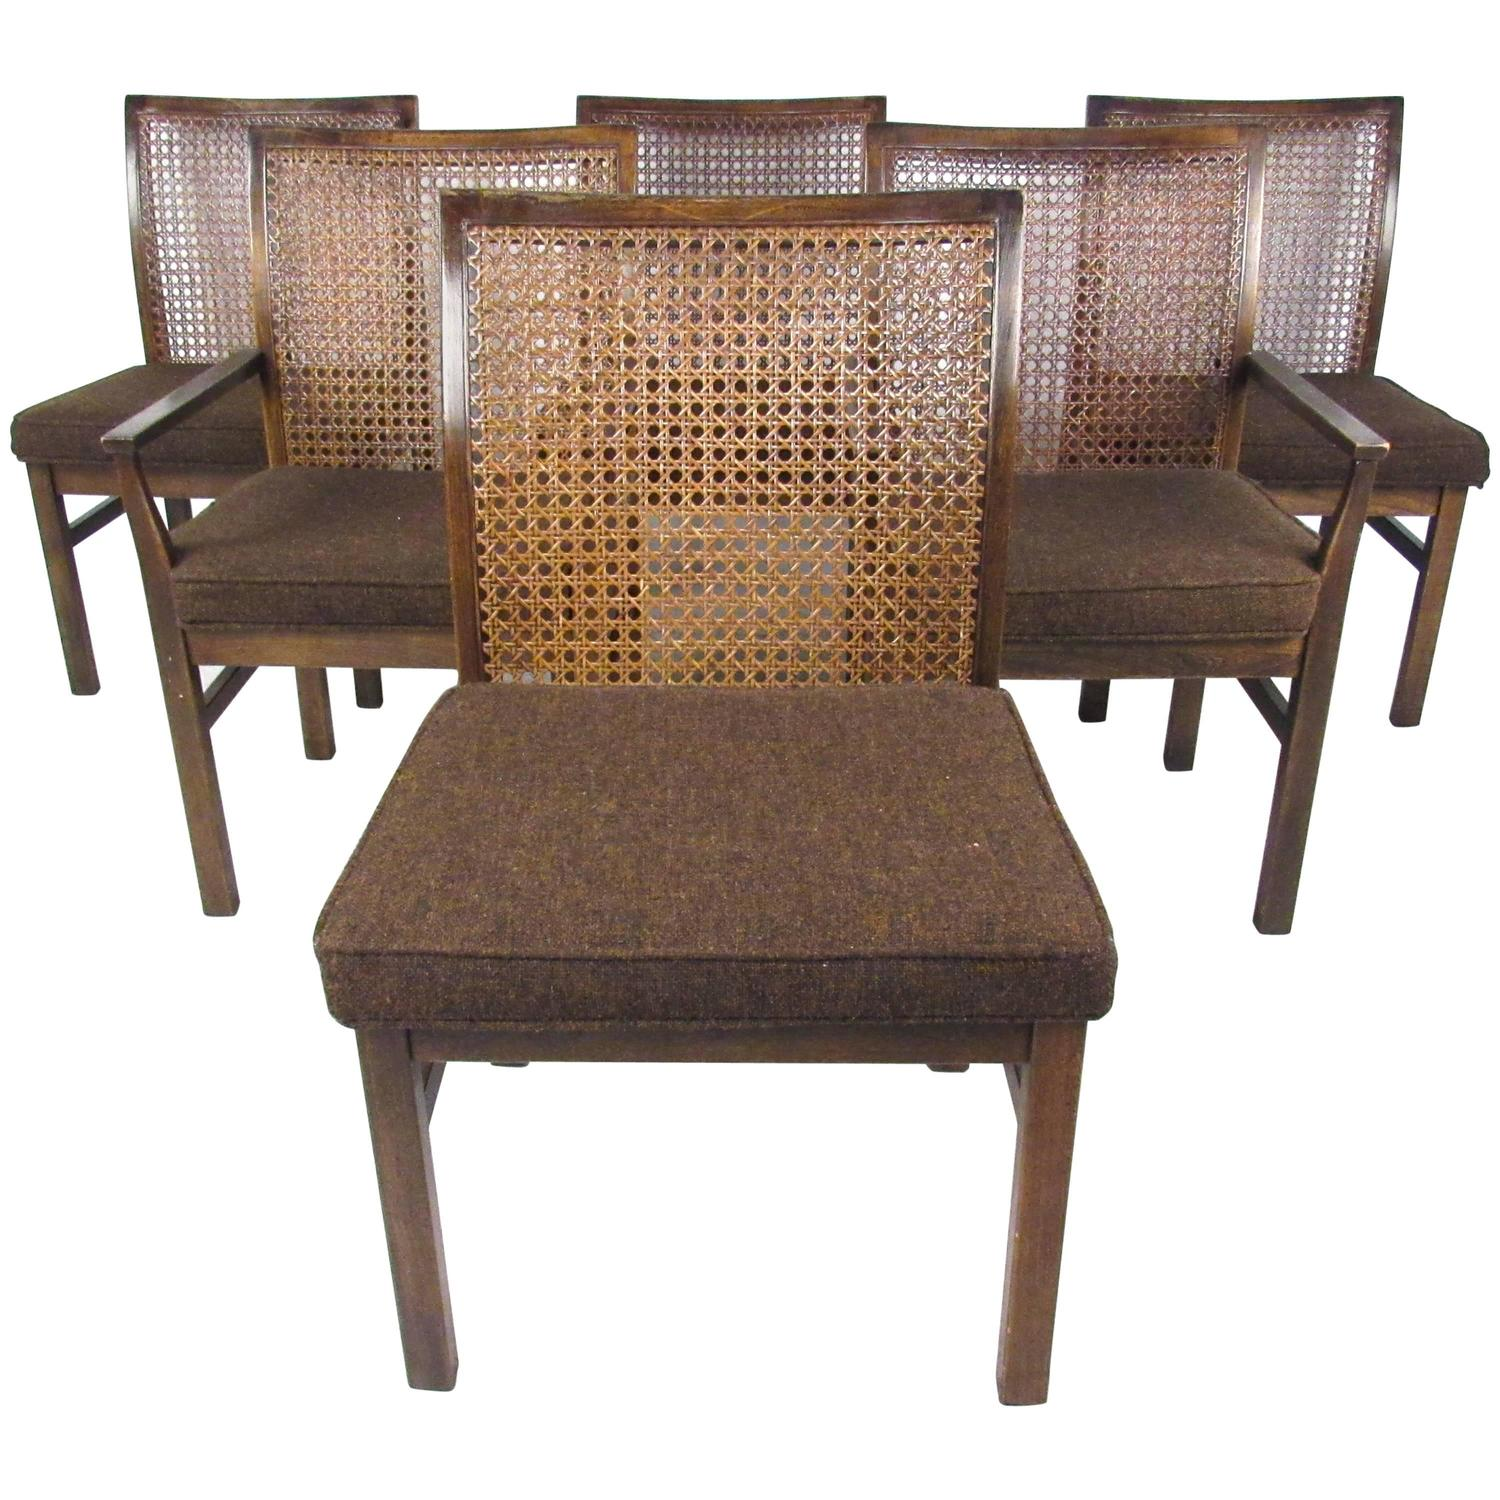 Cane Dining Chairs Set Of Six Mid Century Modern Cane Back Dining Chairs By